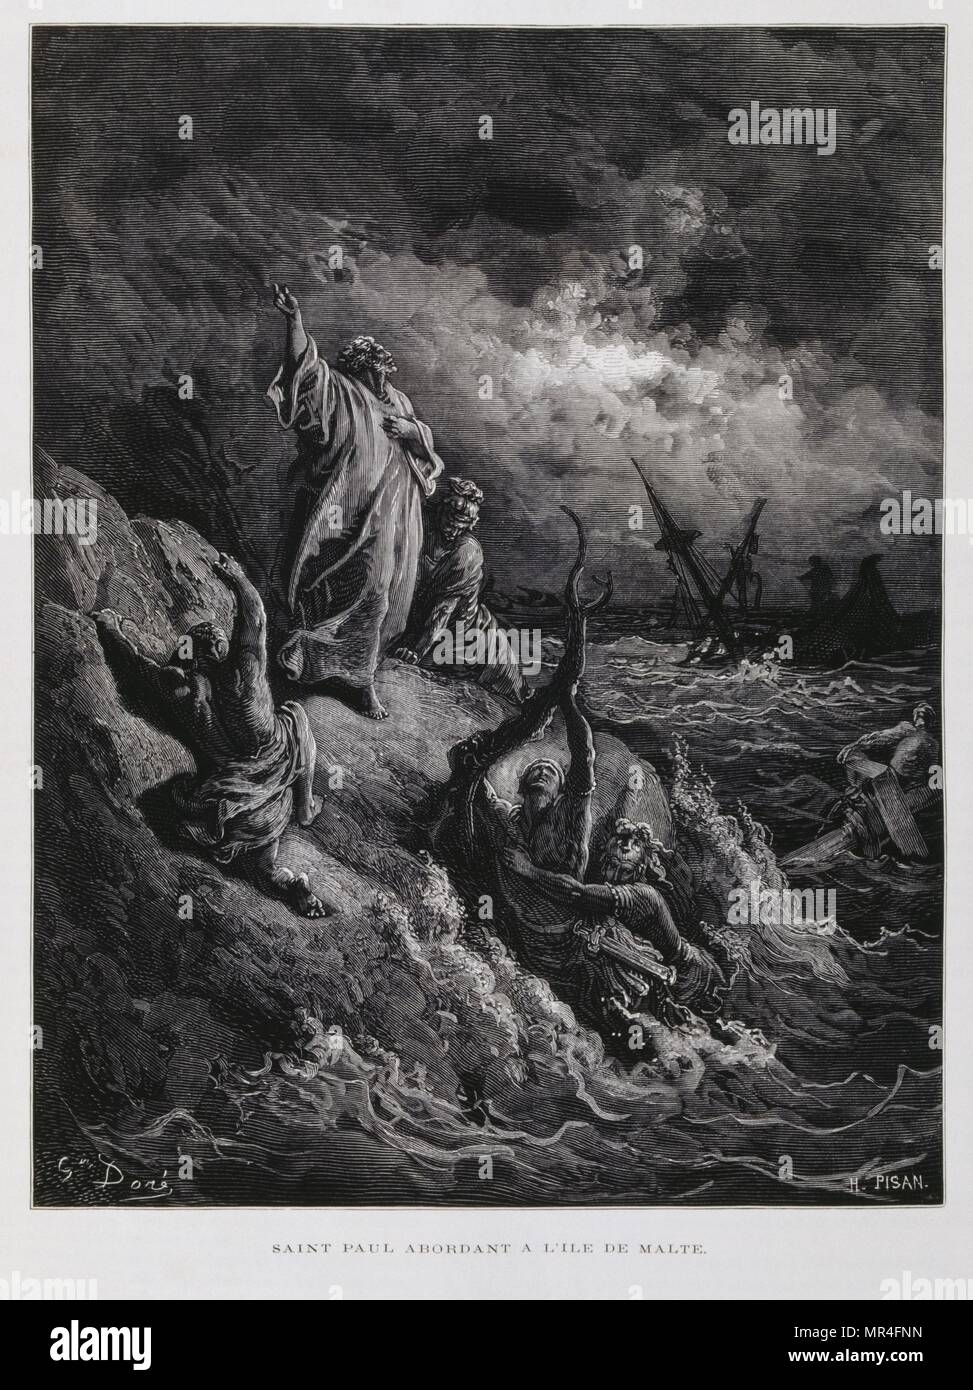 St Paul Landing at Malta, Illustration from the Dore Bible 1866. In 1866, the French artist and illustrator Gustave Doré (1832–1883), published a series of 241 wood engravings for a new deluxe edition of the 1843 French translation of the Vulgate Bible, popularly known as the Bible de Tours. This new edition was known as La Grande Bible de Tours and its illustrations were immensely successful. - Stock Image